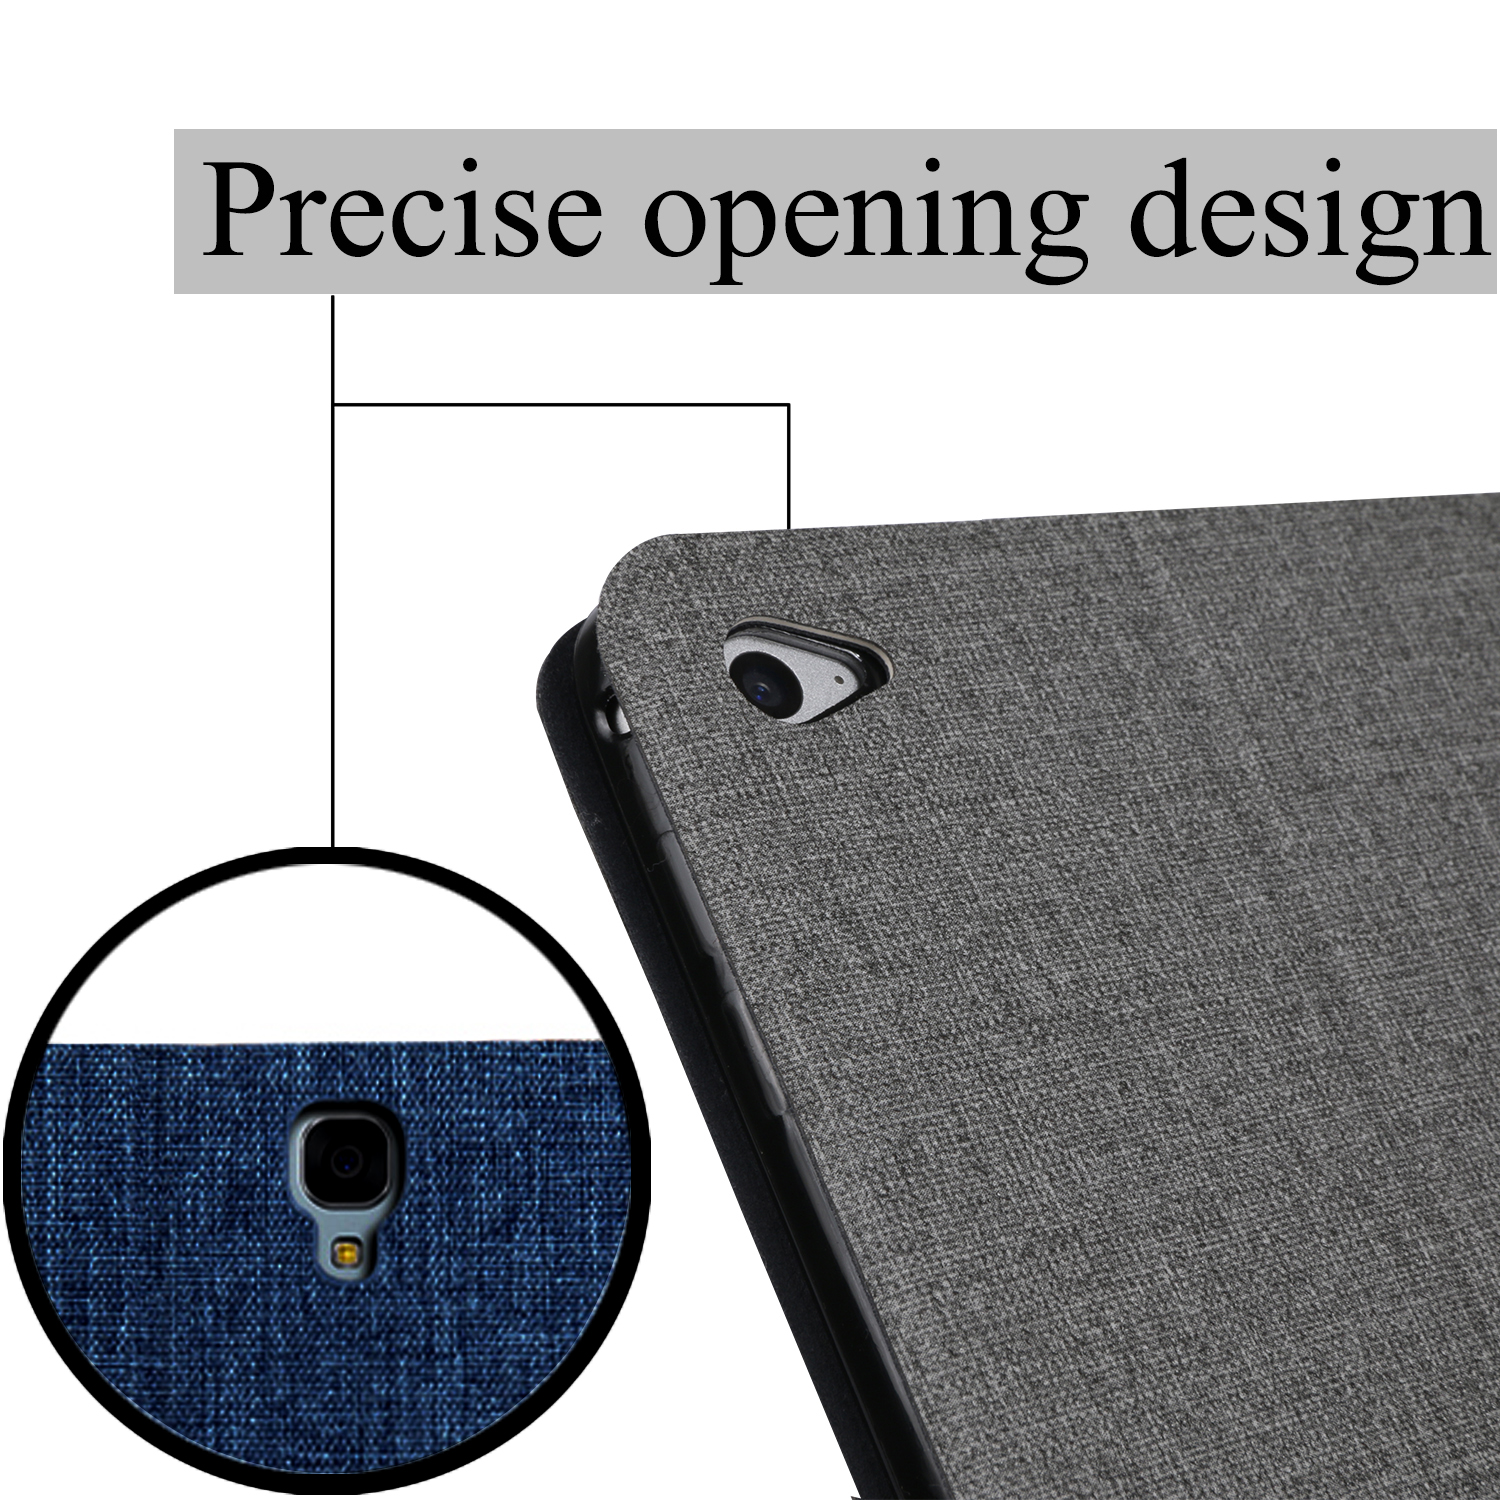 QIJUN tablet flip case for Samsung Galaxy Tab A 8 0 quot 2015 protective Stand Cover Silicone soft shell fundas capa for T350 T355 in Tablets amp e Books Case from Computer amp Office